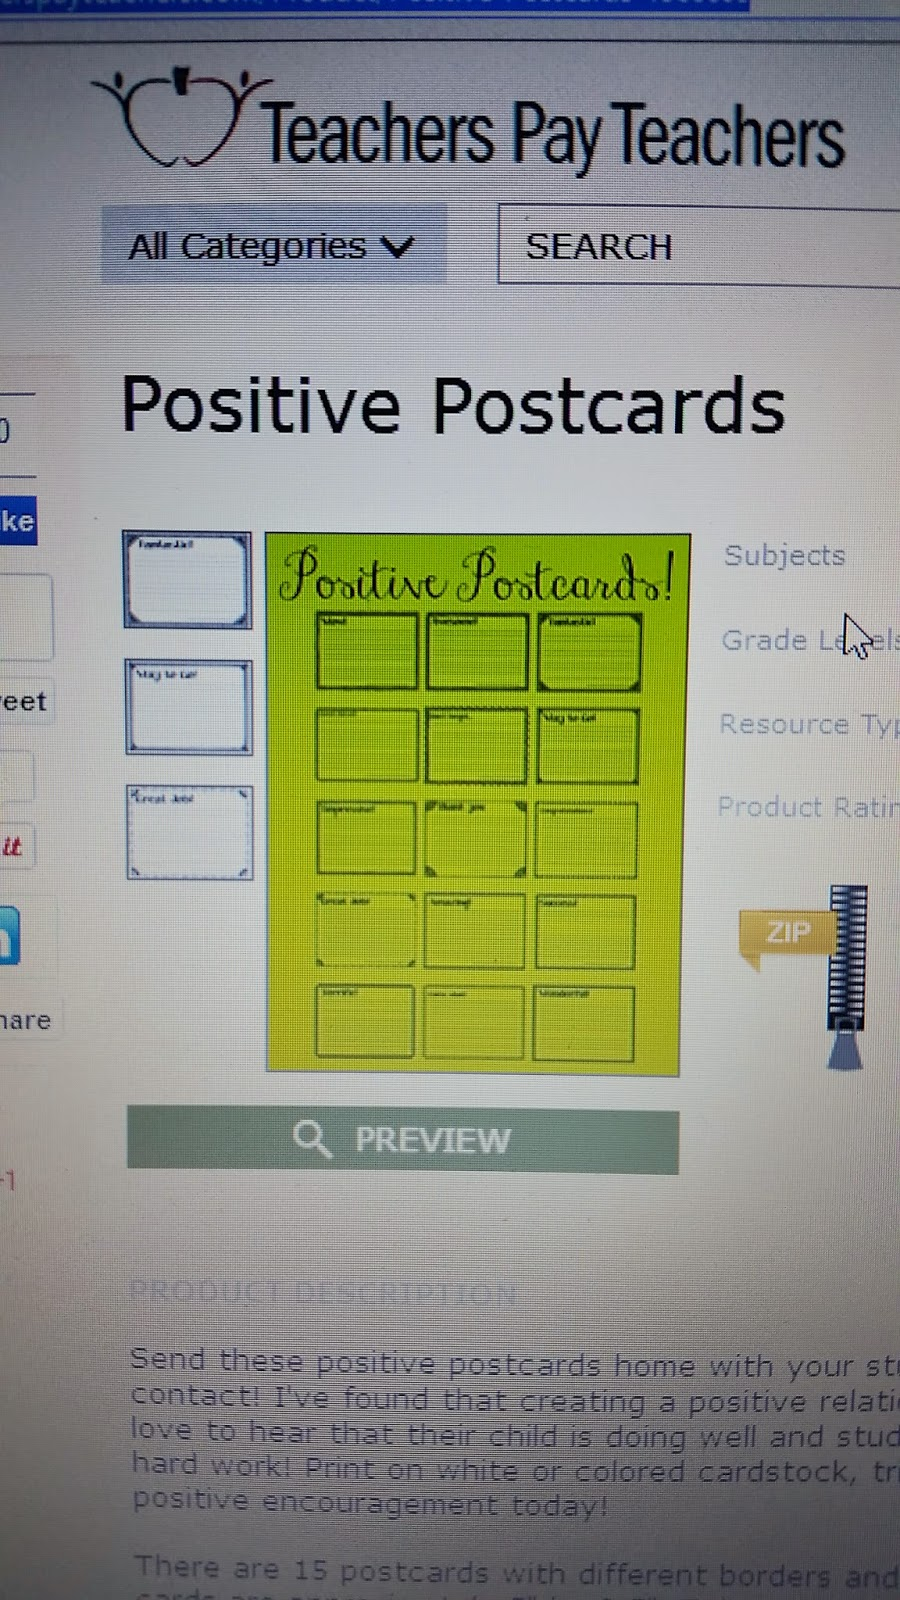 http://www.teacherspayteachers.com/Product/Positive-Postcards-1366609